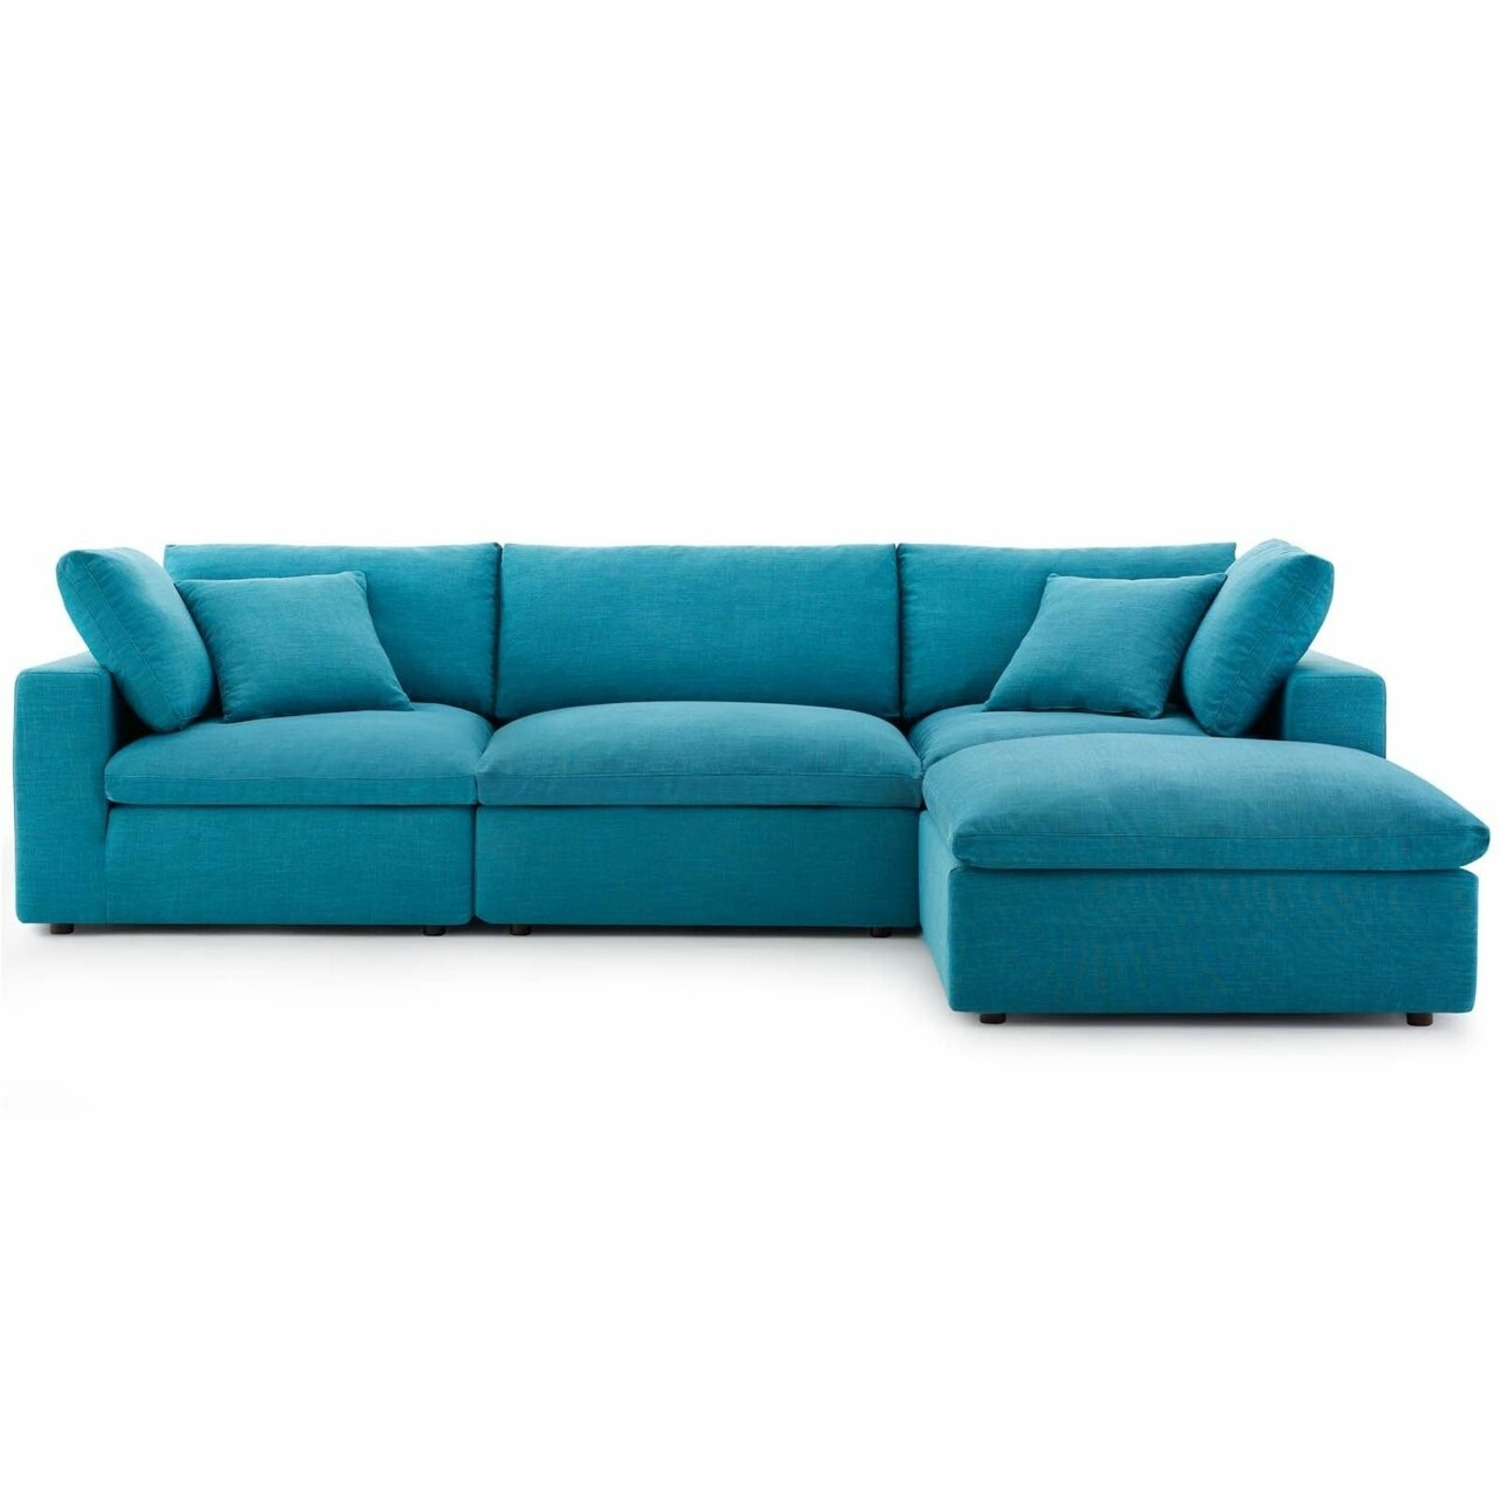 4-Piece Sectional In Teal Polyester & Linen Fabric - image-1